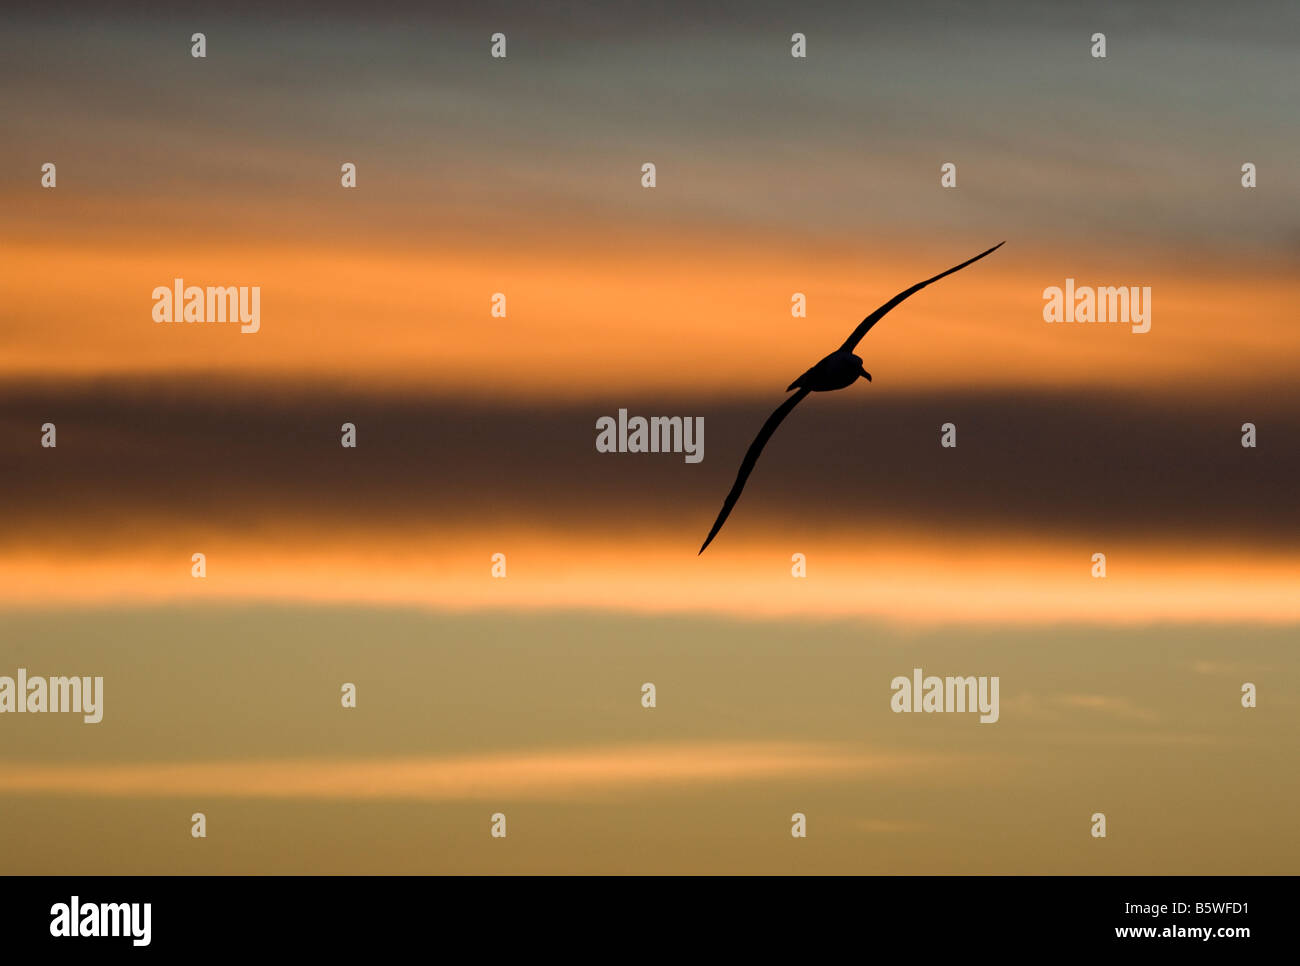 Silhouette of Black-Browed Albatross (Diomedea melanophris) Flying at Sunset over Southern Ocean - Stock Image